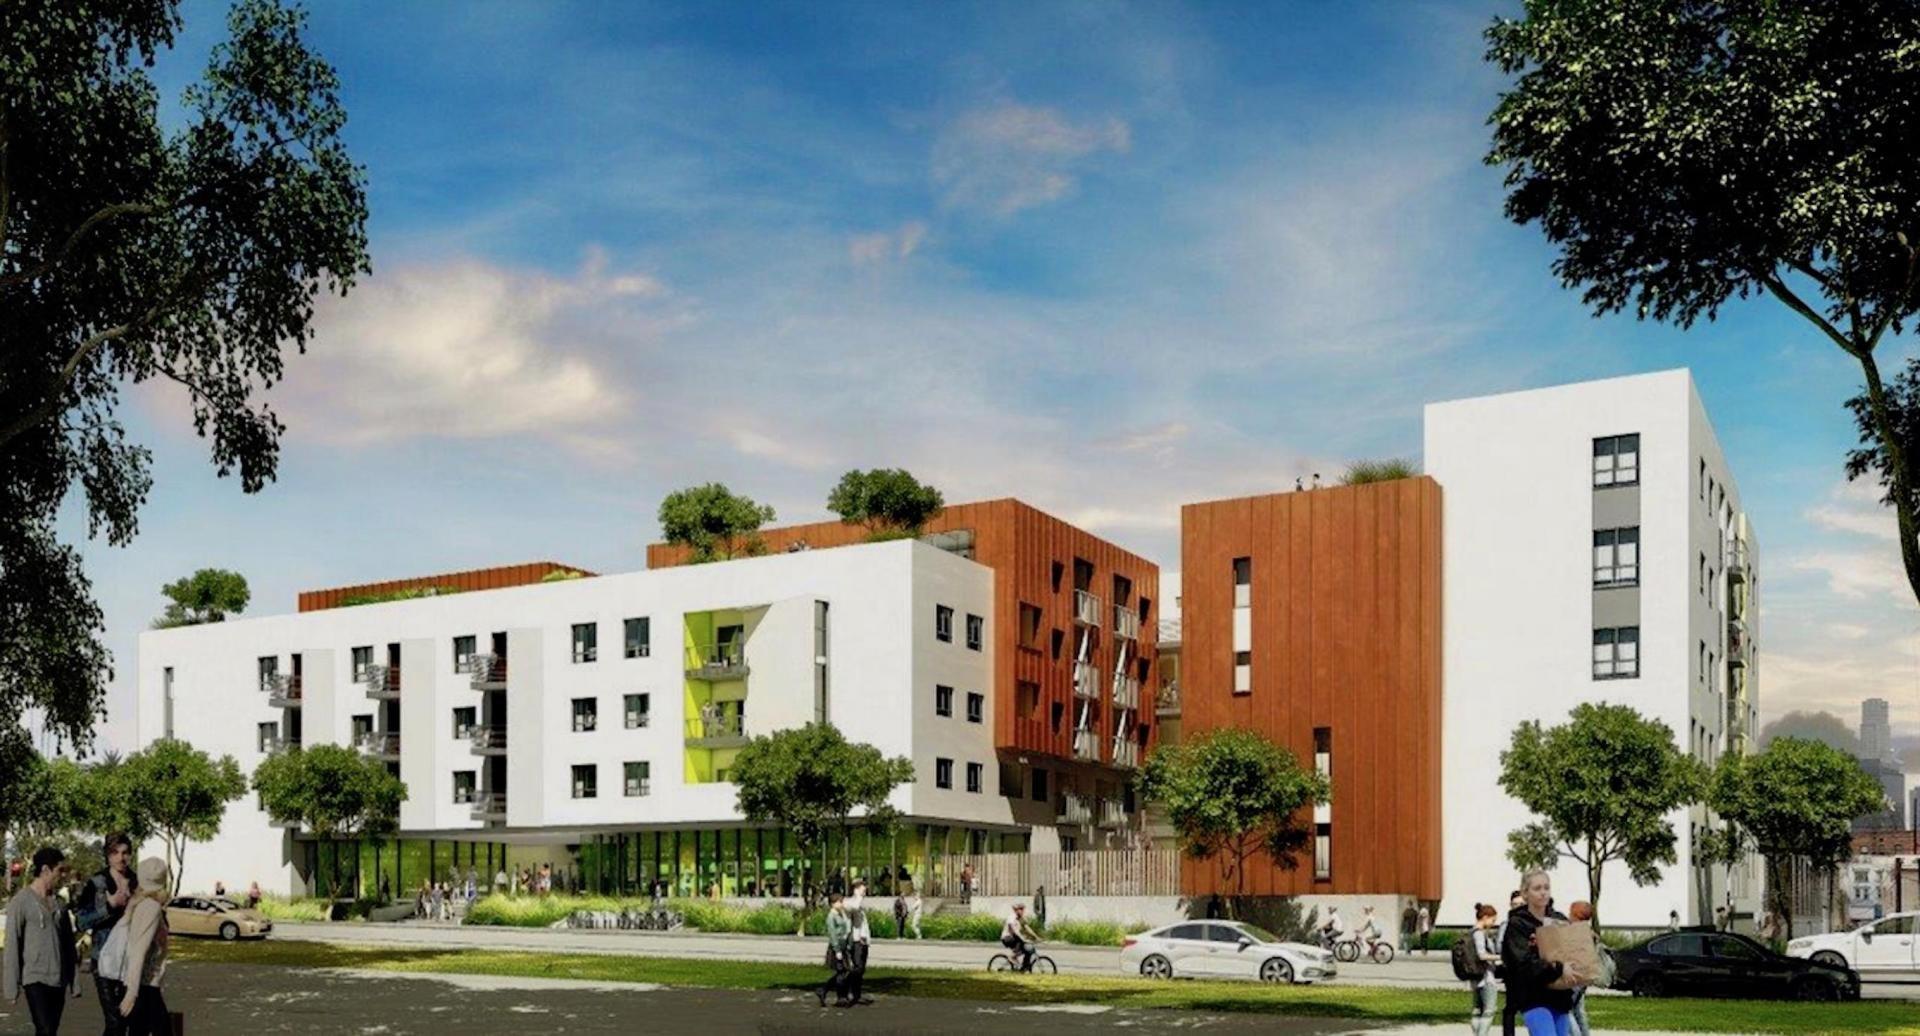 Abode Communities is developing Grandview Apartments a 100-unit affordable housing project in Los Angeles